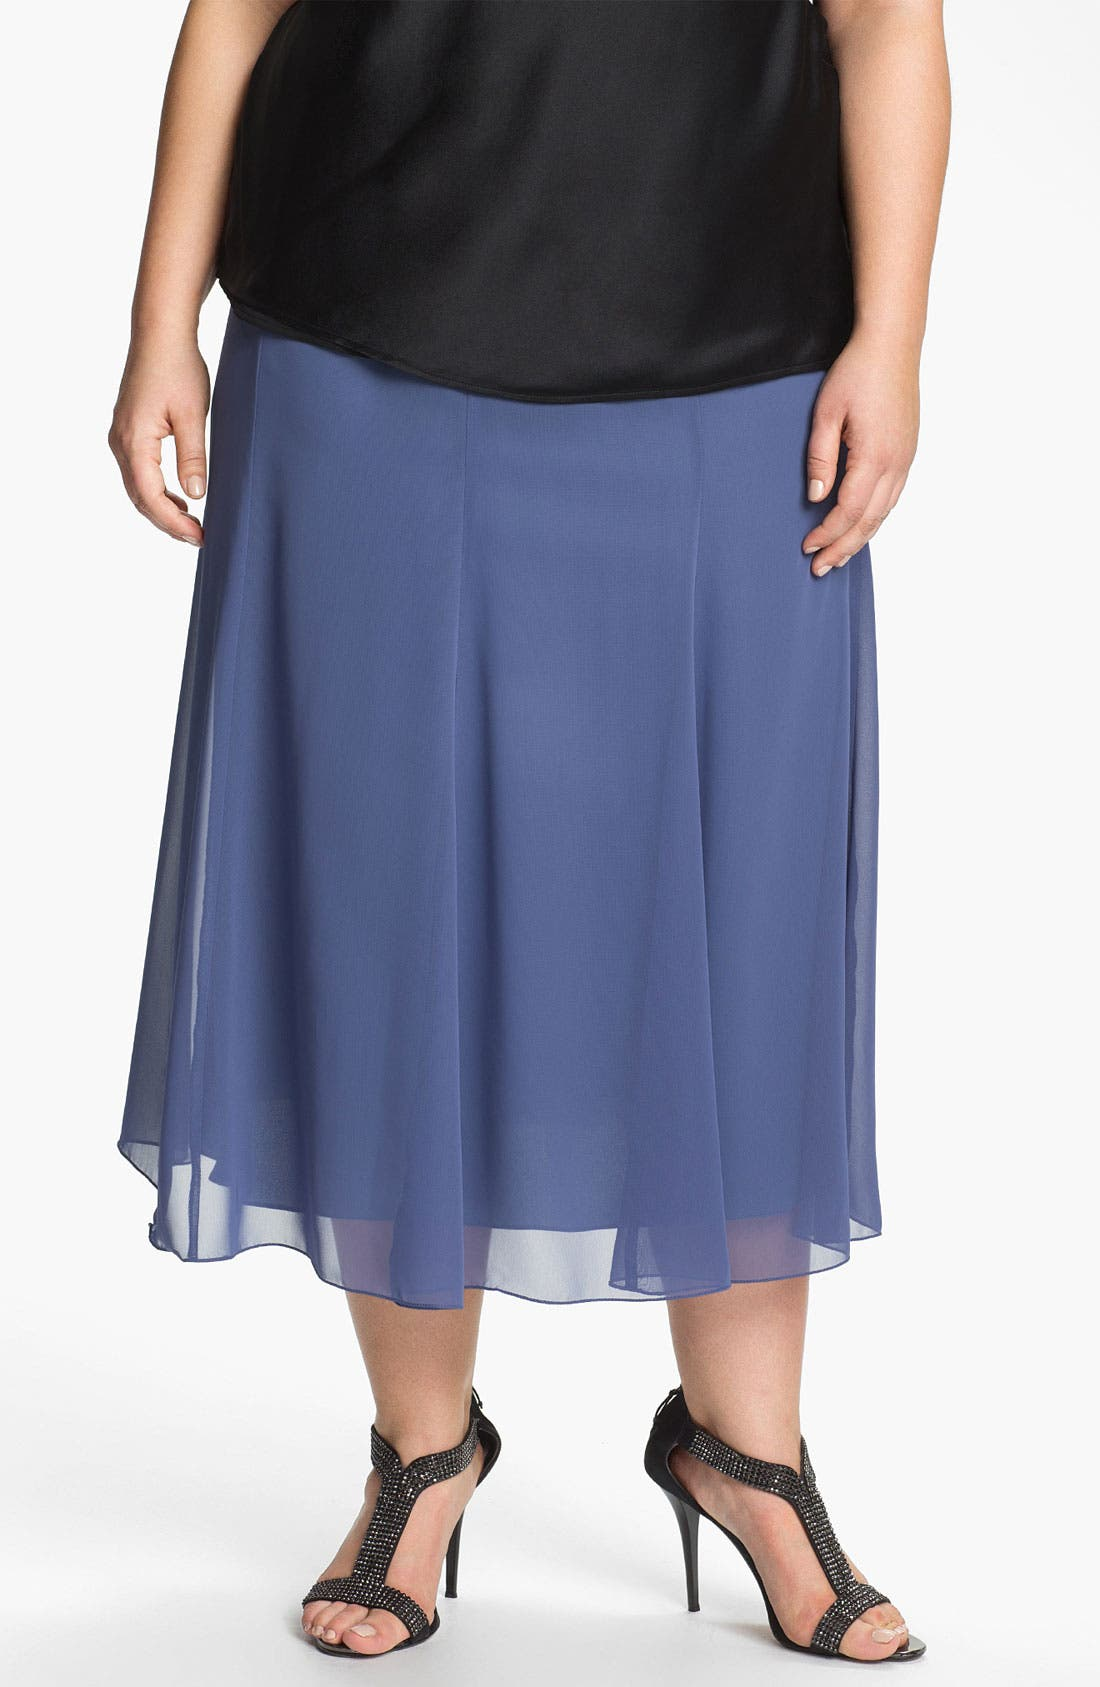 Alternate Image 1 Selected - Alex Evenings Chiffon Skirt (Plus Size)